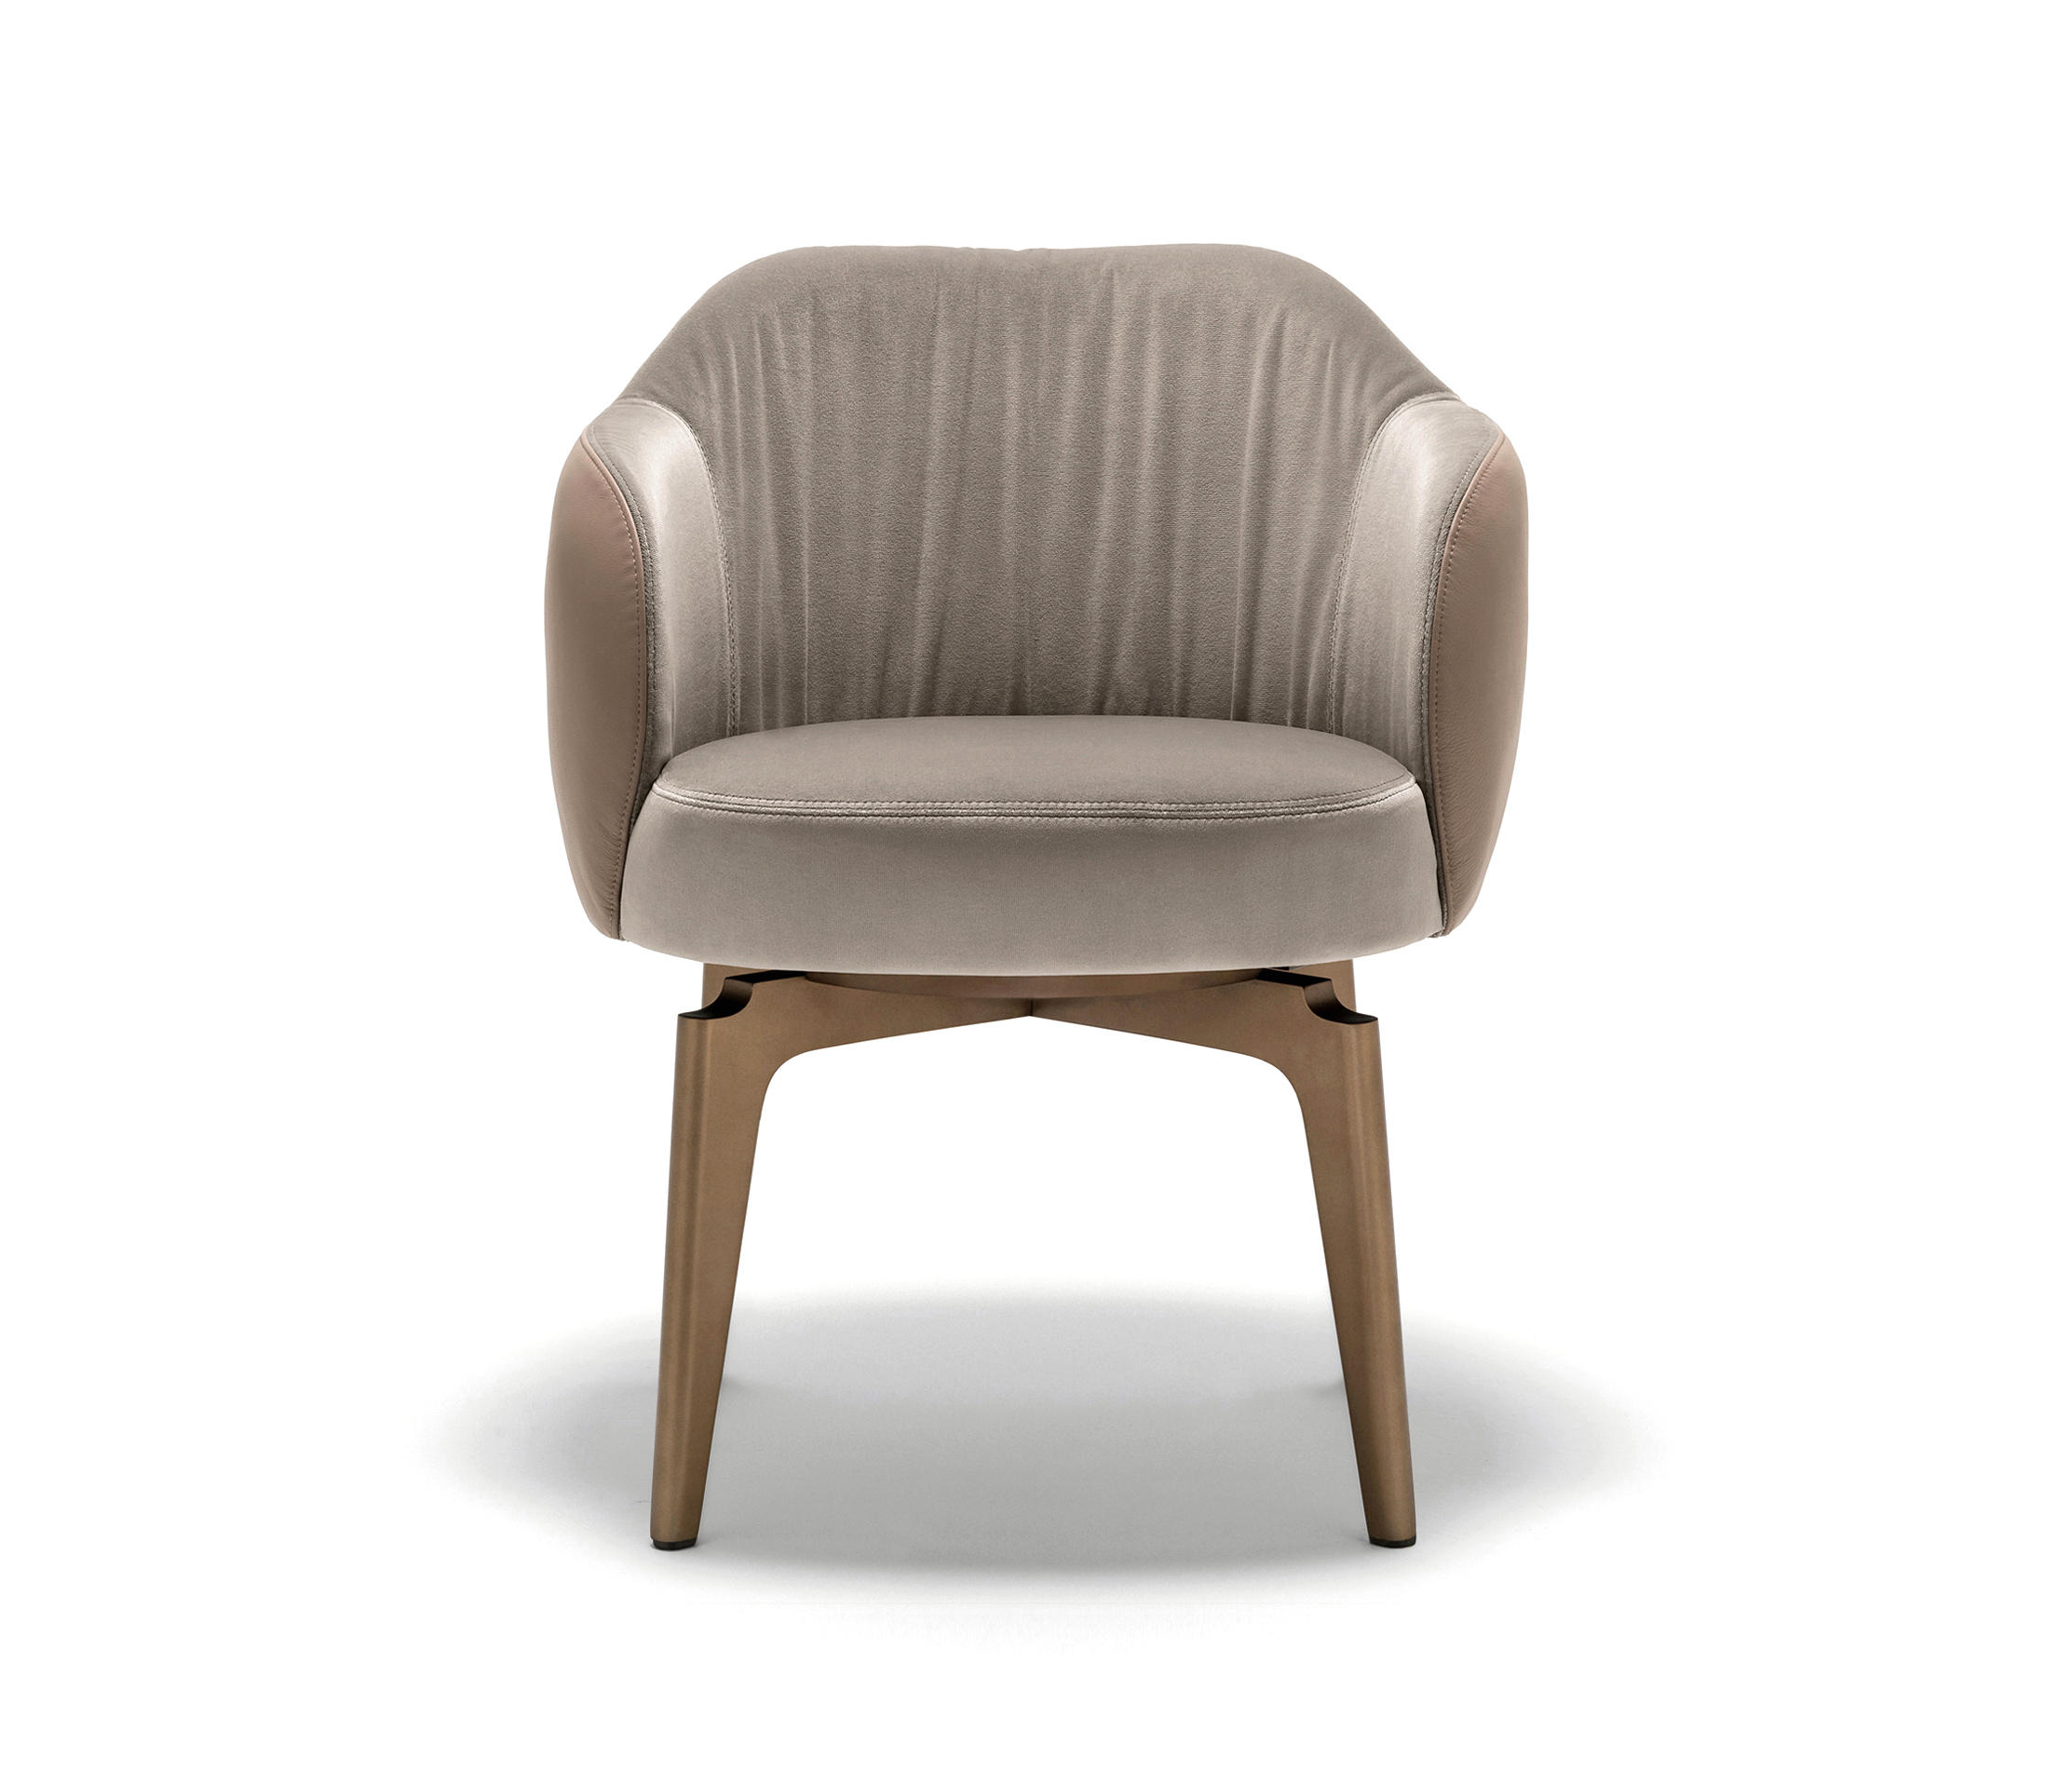 Elisa small armchair visitors chairs side chairs from for Armchair furniture